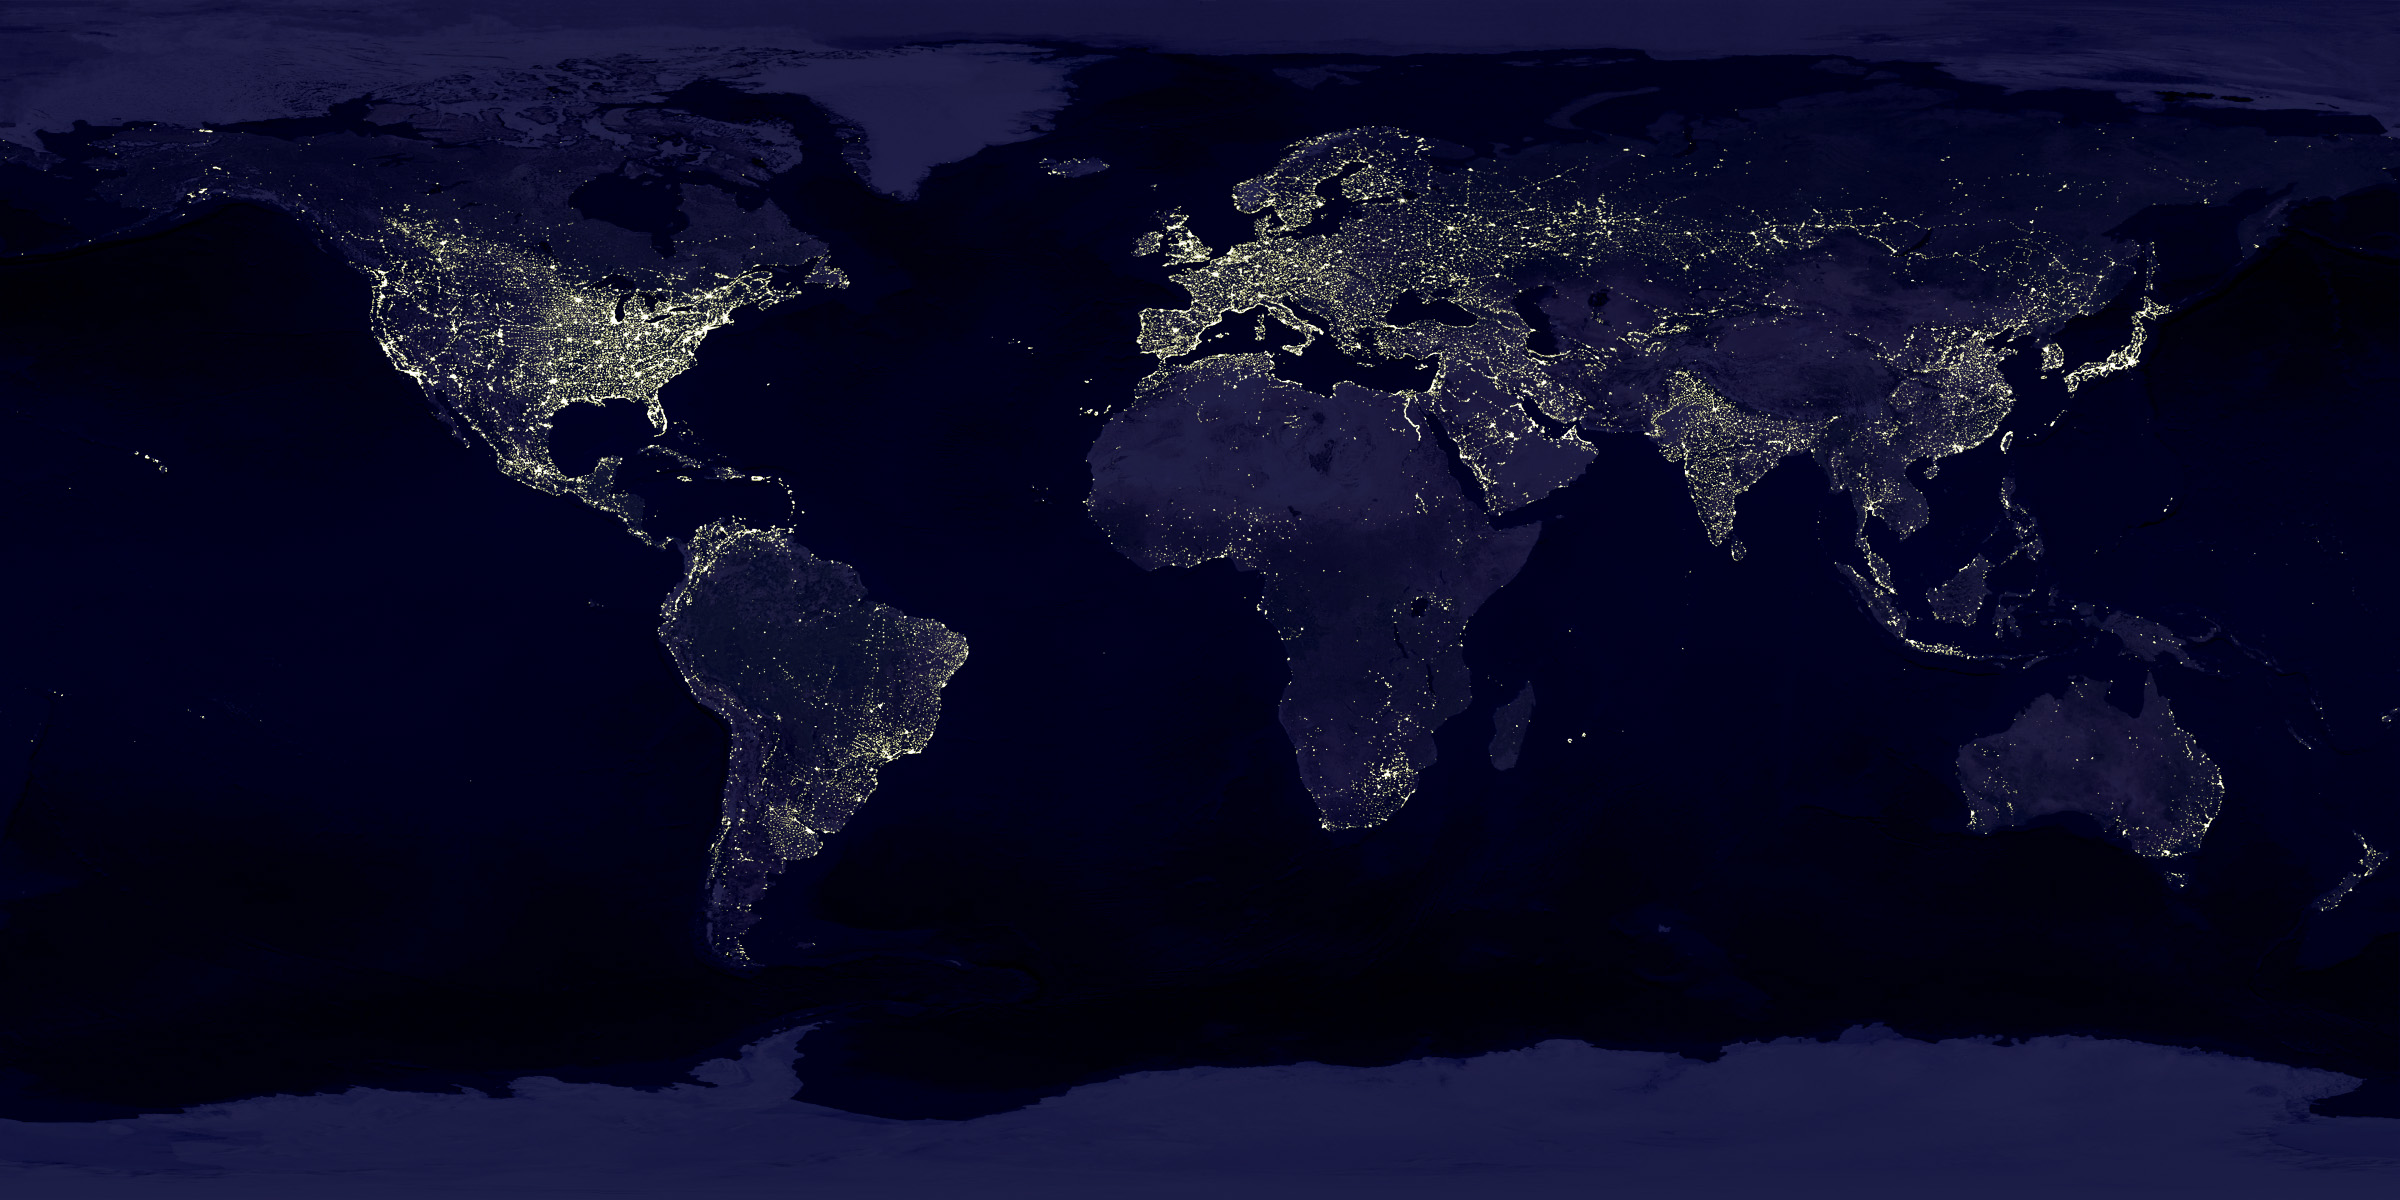 Nasa visible earth earths city lights file dimensions gumiabroncs Gallery